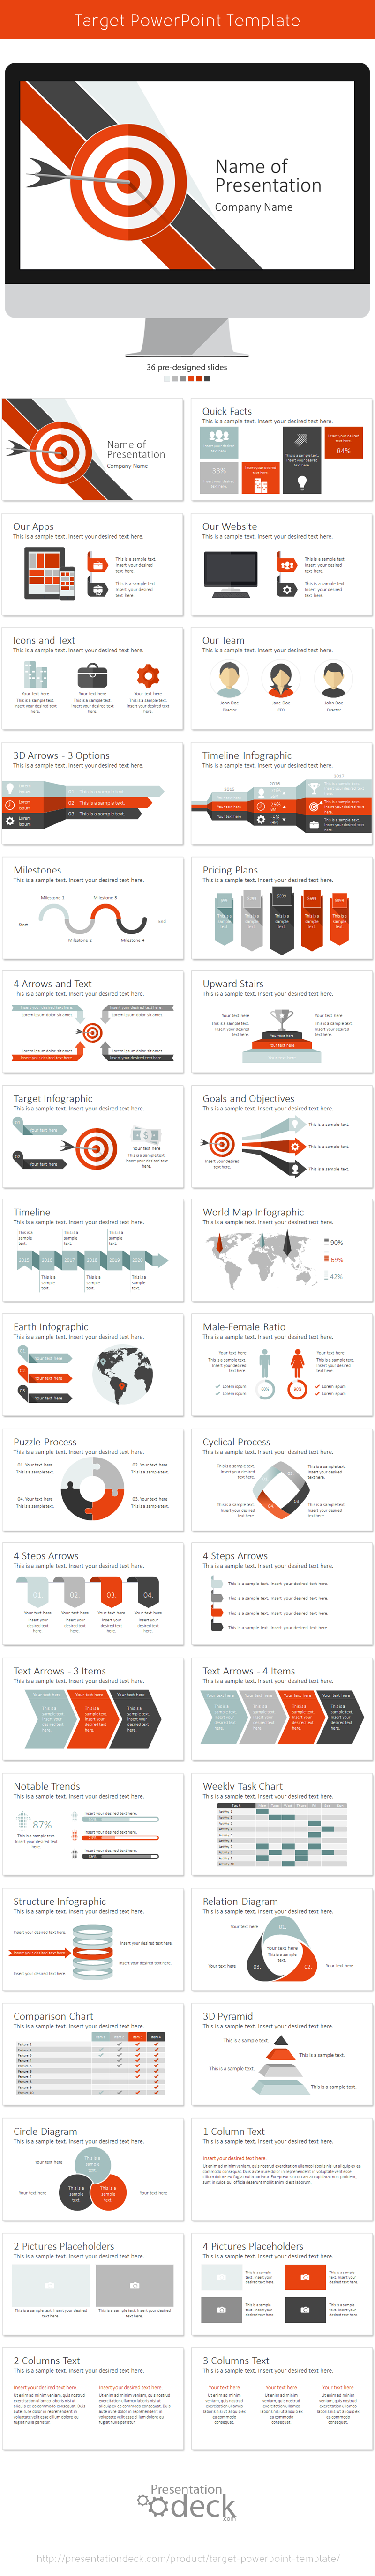 target powerpoint template target template and presentation design